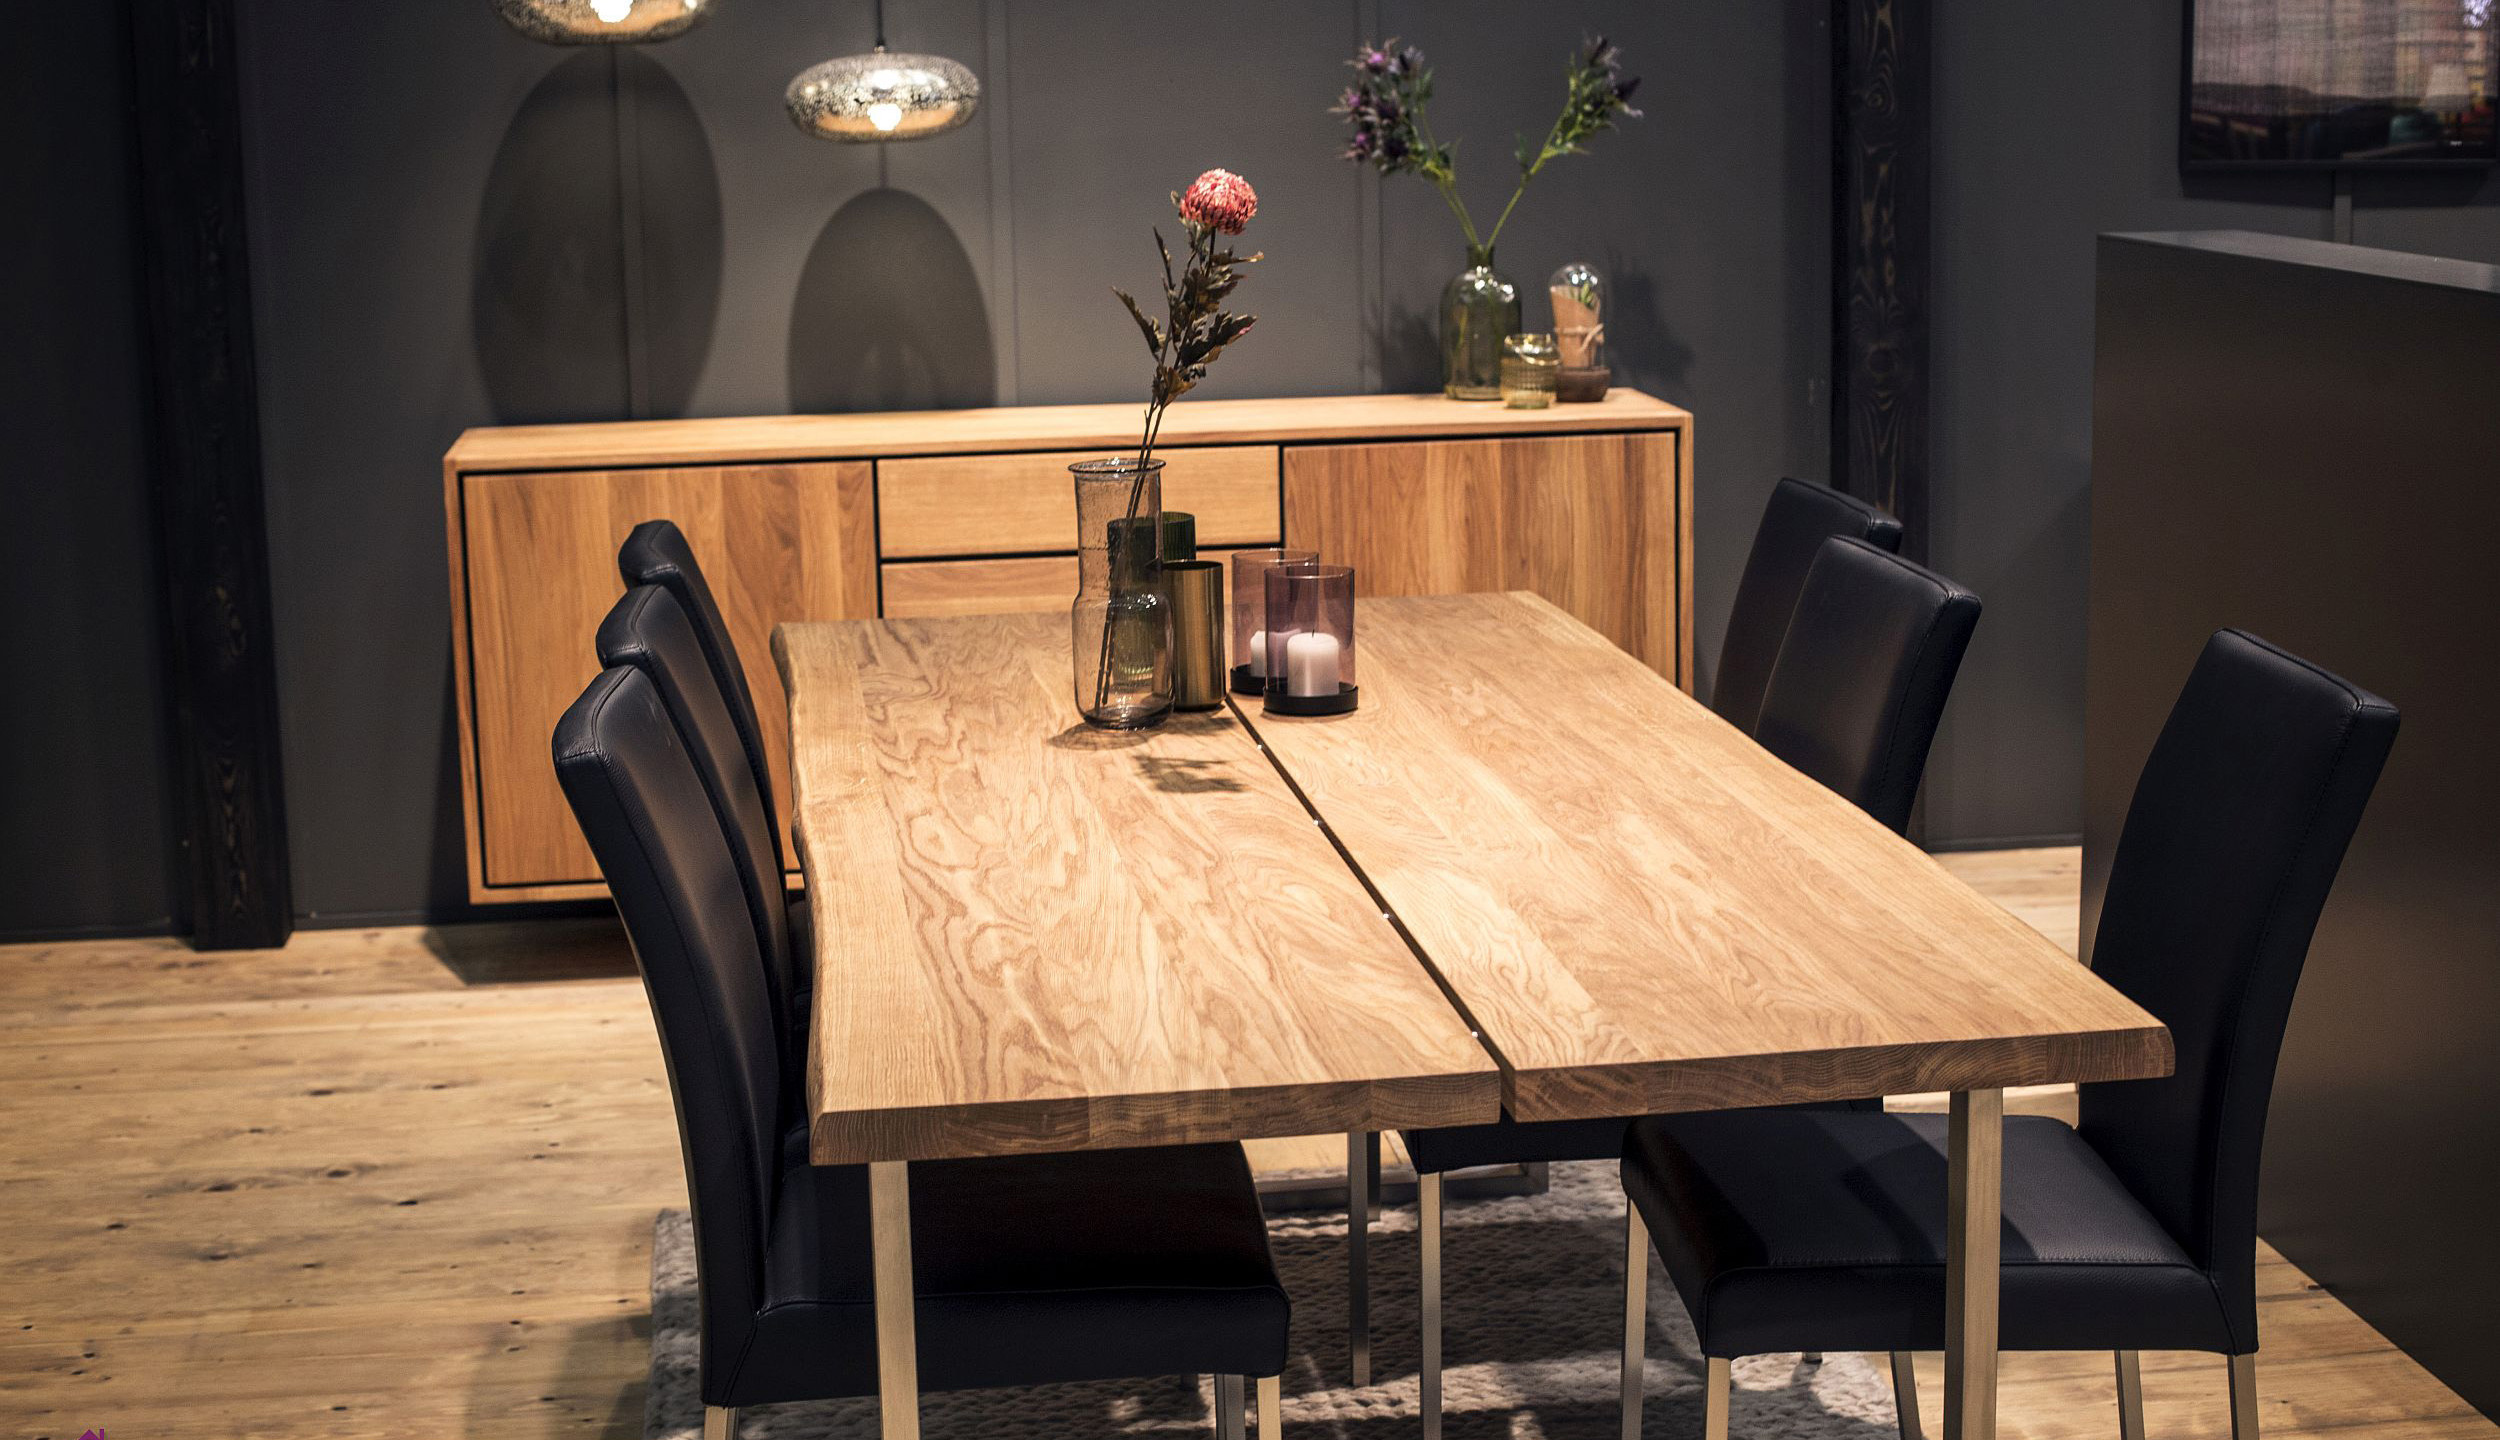 Live-edge wooden dining table